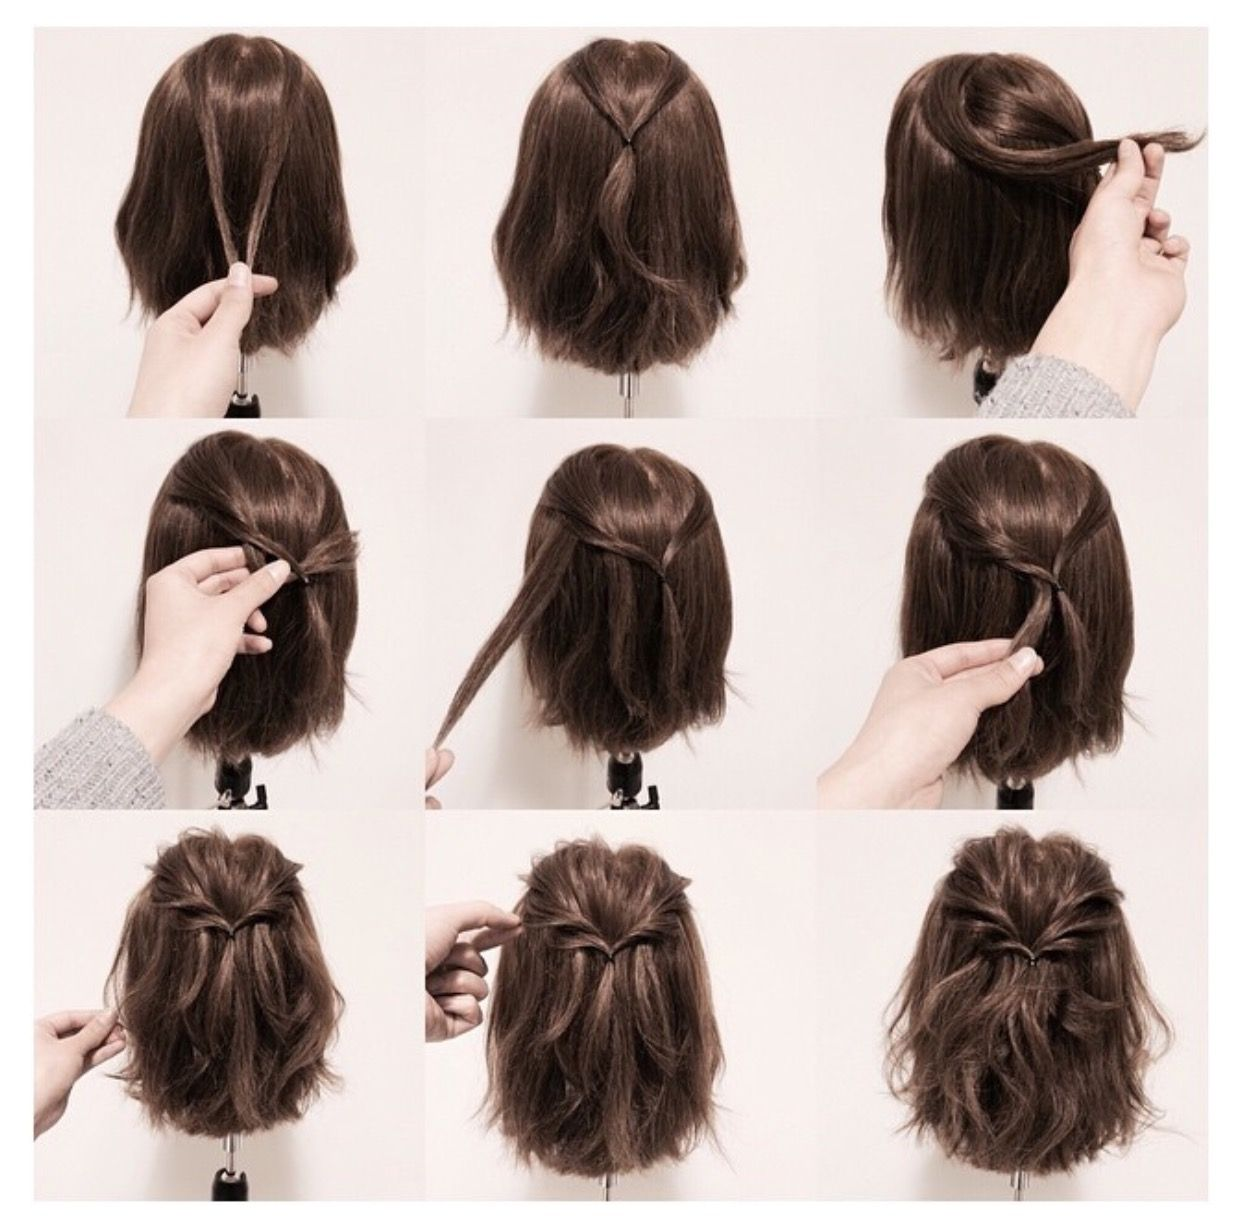 Pin by robyn zapata on hair pinterest hair styles hair and